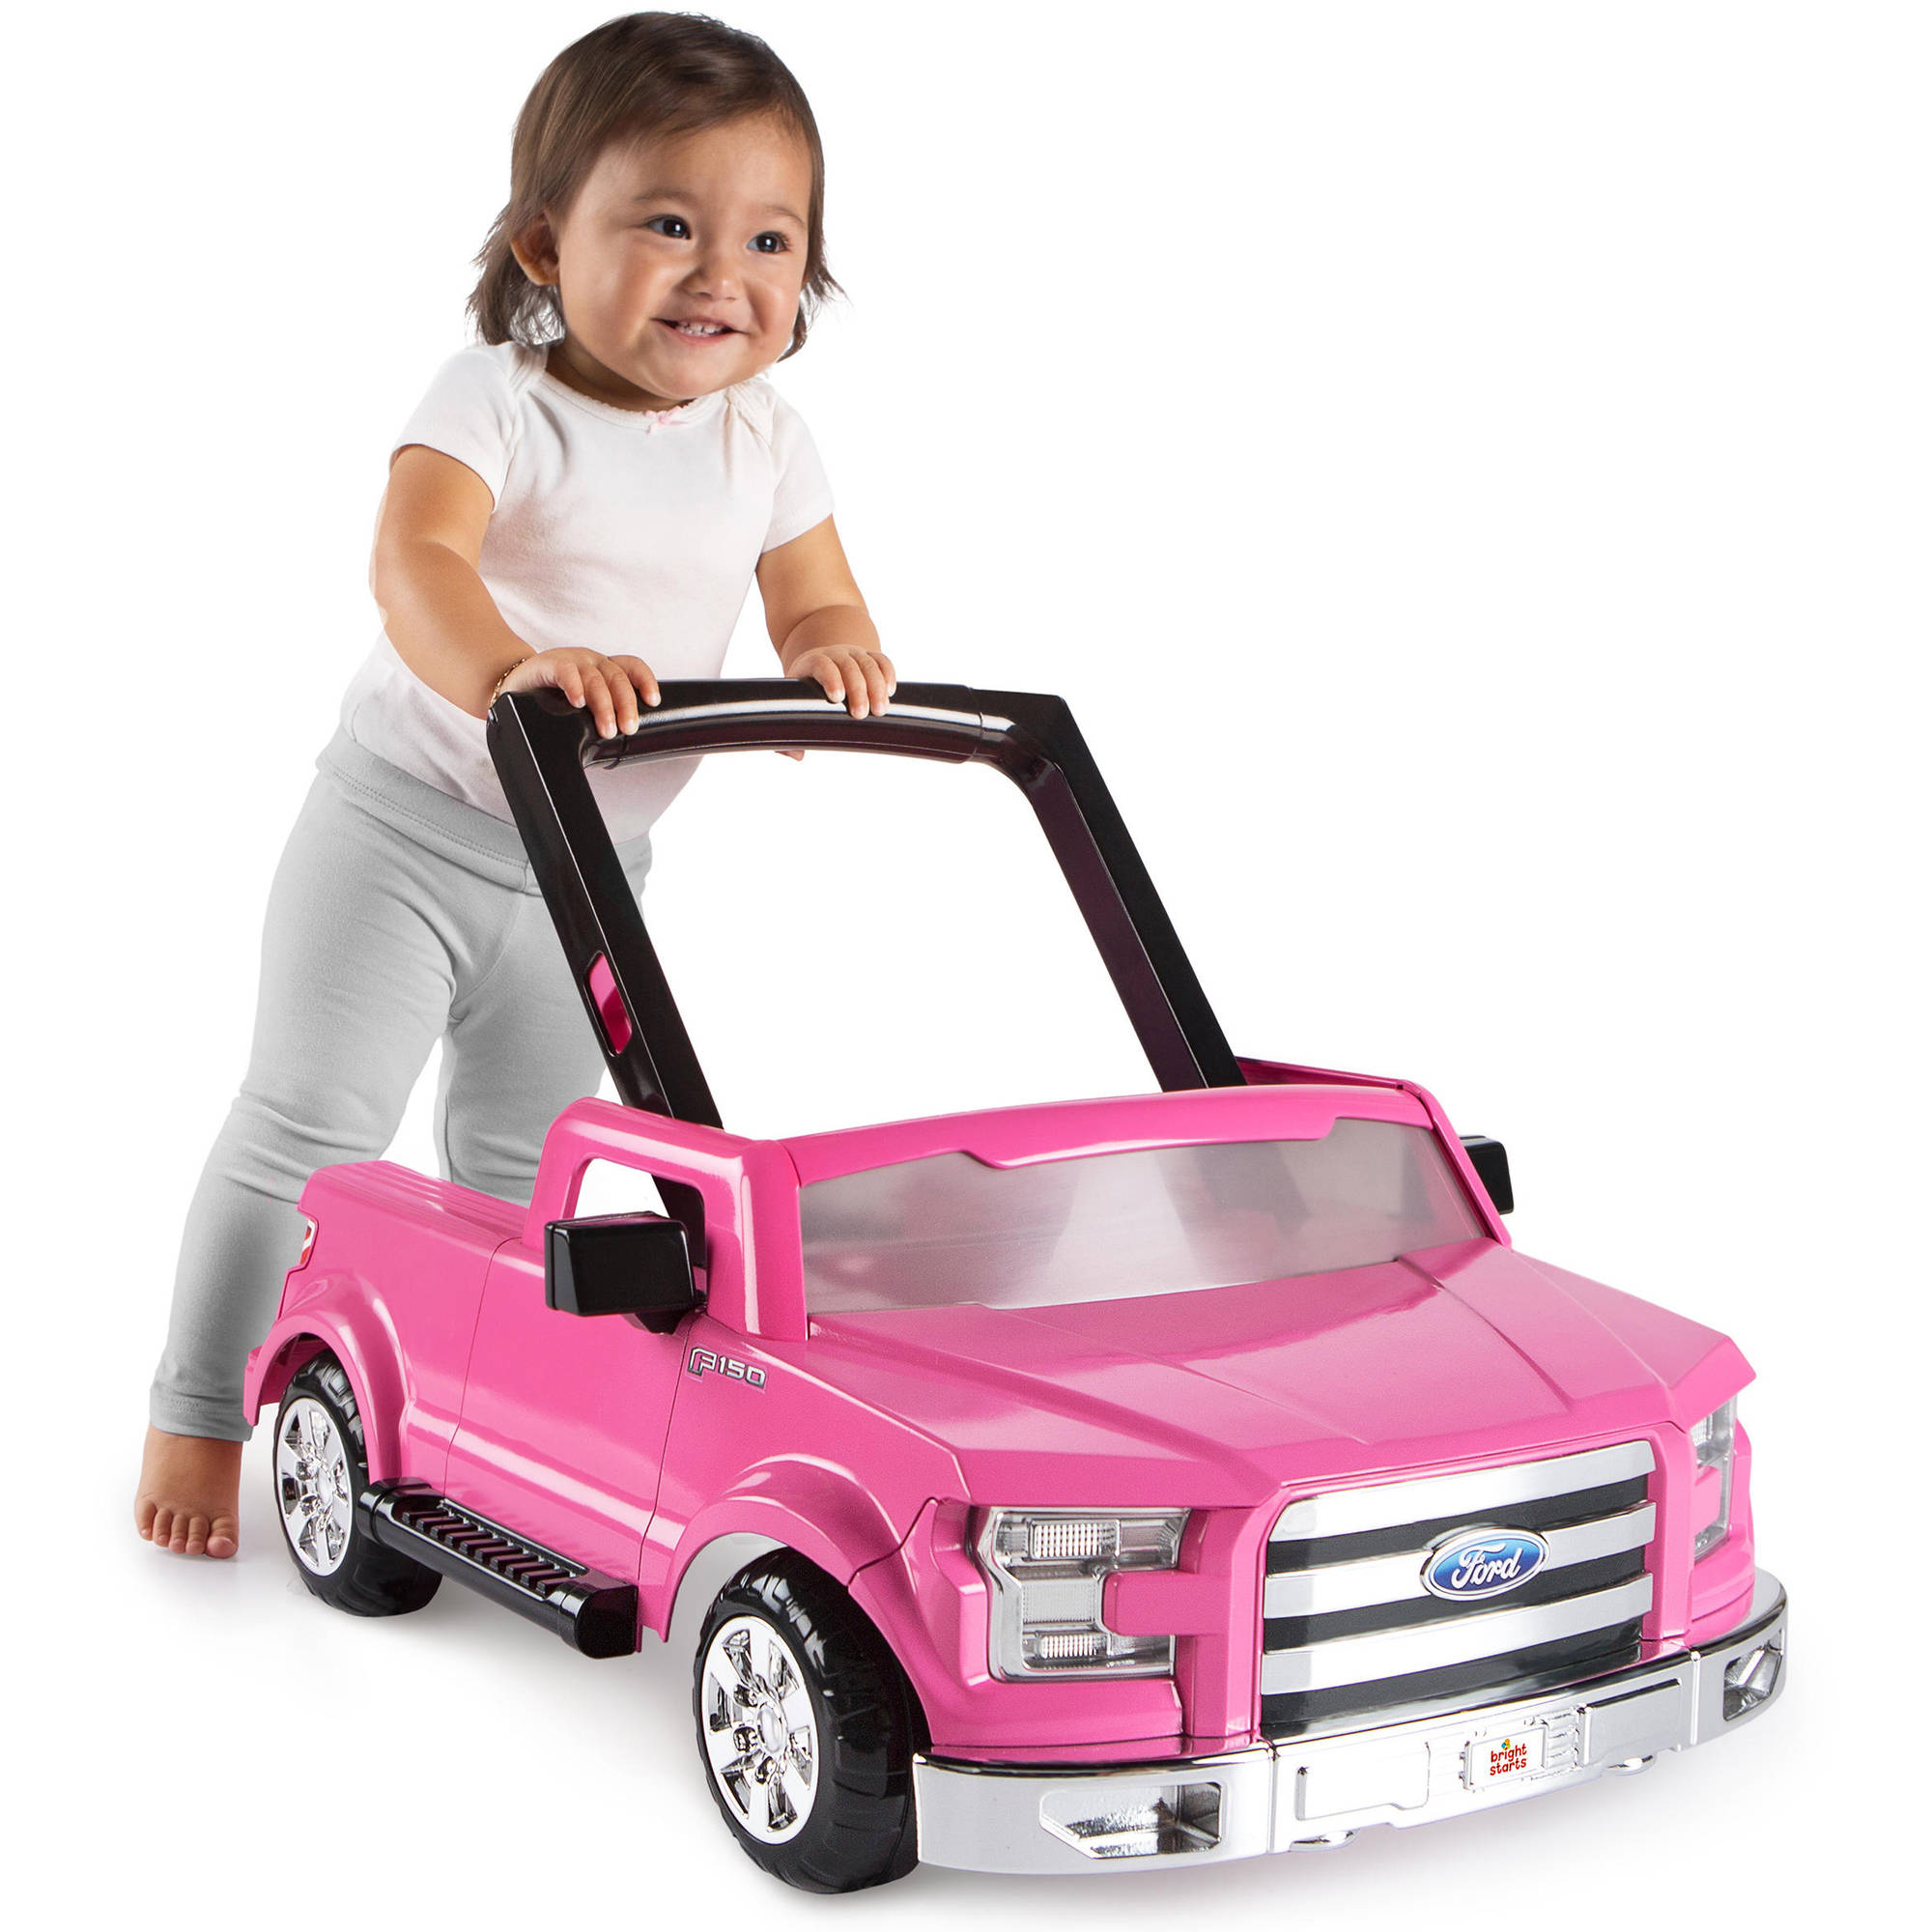 daf28c9c30fb Bright Starts 3 Ways to Play Walker Ford F-150 Pink Baby Holder Seat ...